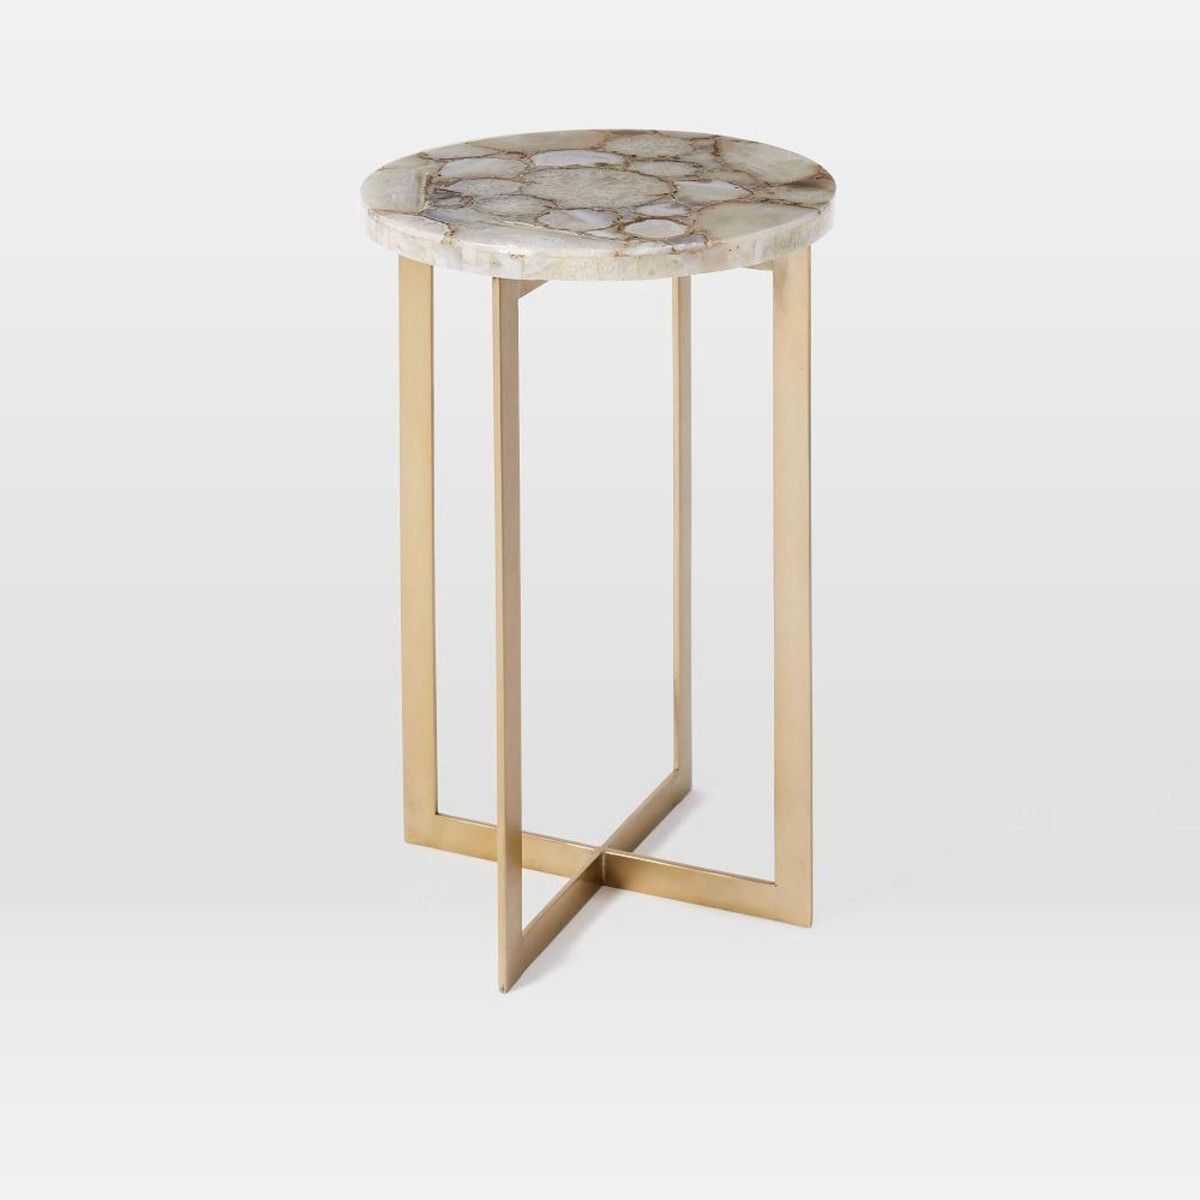 agate side table master bedroom living room accent west elm gold glass pottery barn end tables coffee with small nesting tall modern lamps williams sonoma floor lamp ikea white